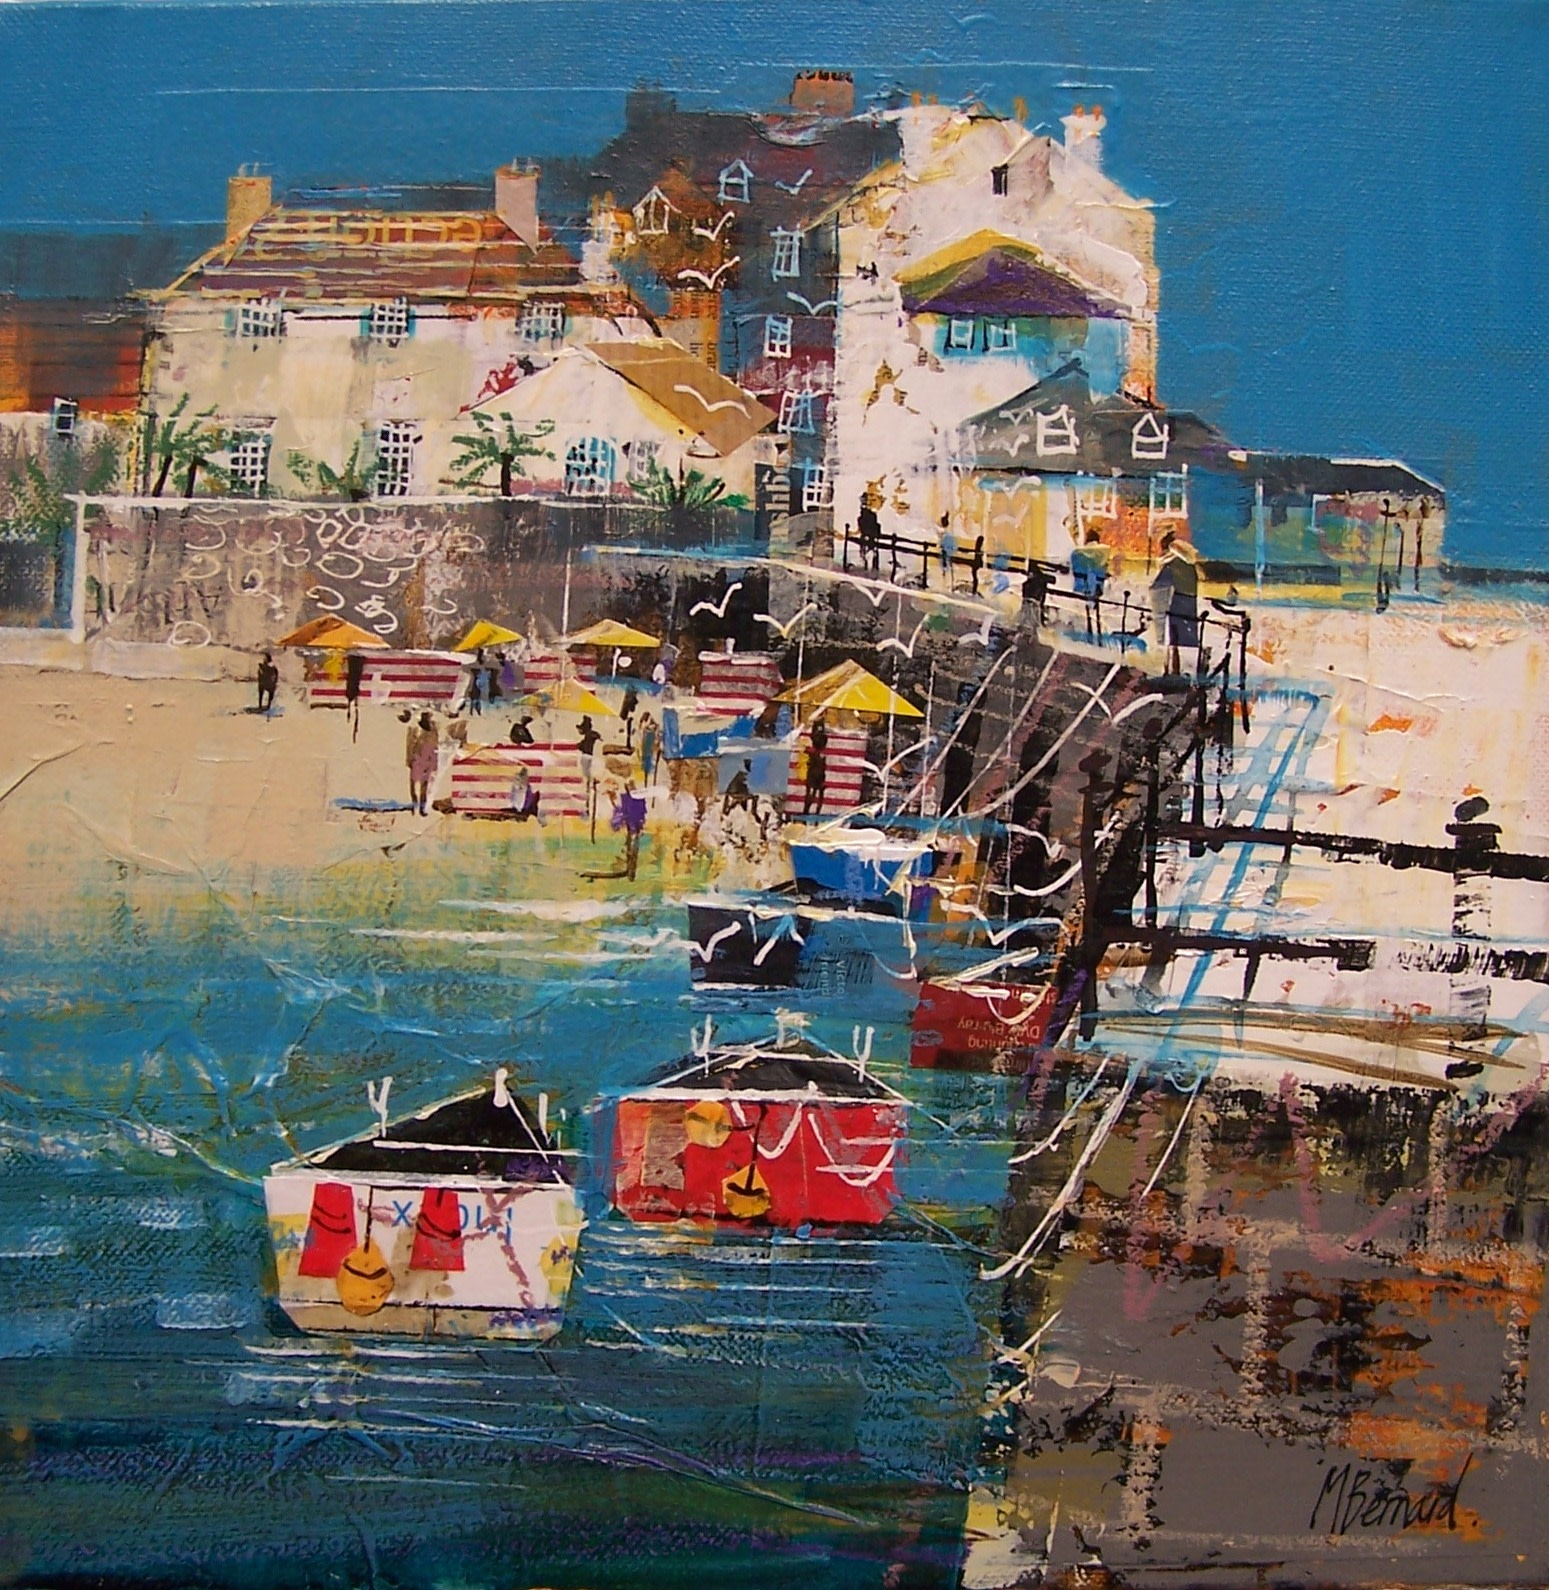 "<span class=""link fancybox-details-link""><a href=""/artists/155-mike-bernard-ri/works/5789-mike-bernard-ri-harbour-wall-st-ives-2018/"">View Detail Page</a></span><div class=""artist""><strong>Mike Bernard RI</strong></div> <div class=""title""><em>Harbour Wall, St Ives</em>, 2018</div> <div class=""signed_and_dated"">signed by the artist</div> <div class=""medium"">Mixed media on canvas</div> <div class=""dimensions"">30.5 x 30.5 cm<br /> 12 x 12 inches</div><div class=""copyright_line"">OwnArt: £ 95 x 10 Months, 0% APR</div>"